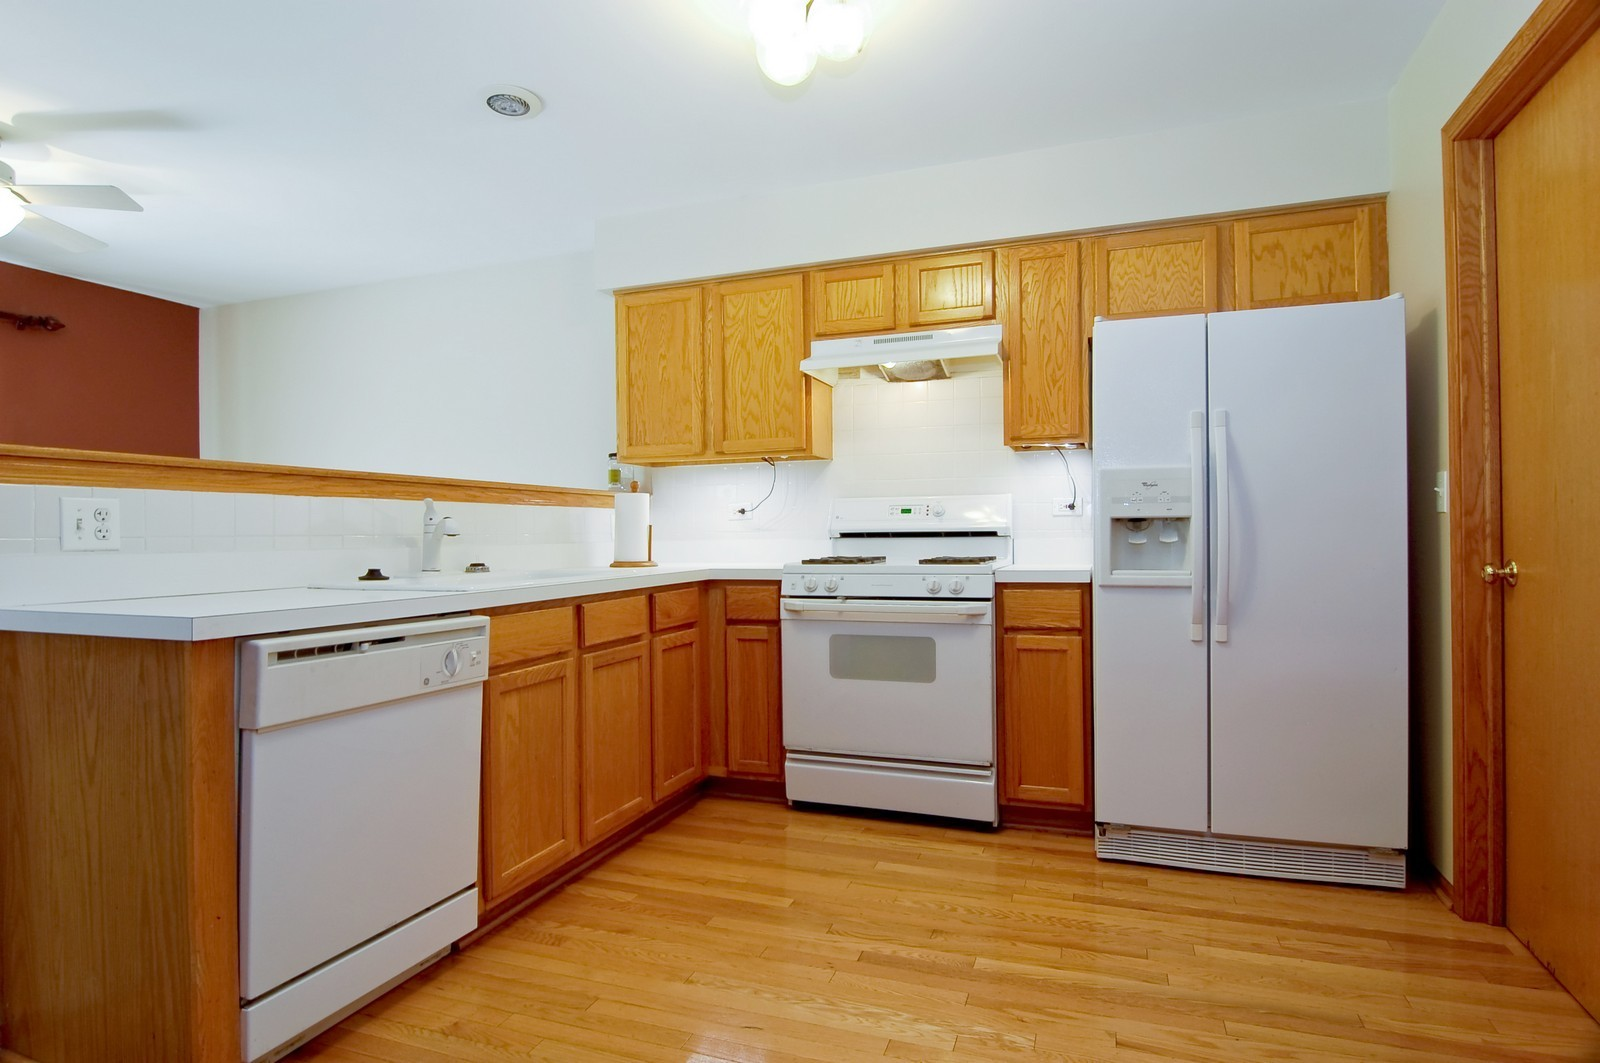 Real Estate Photography - 918 Jacob, West Chicago, IL, 60185 - Kitchen